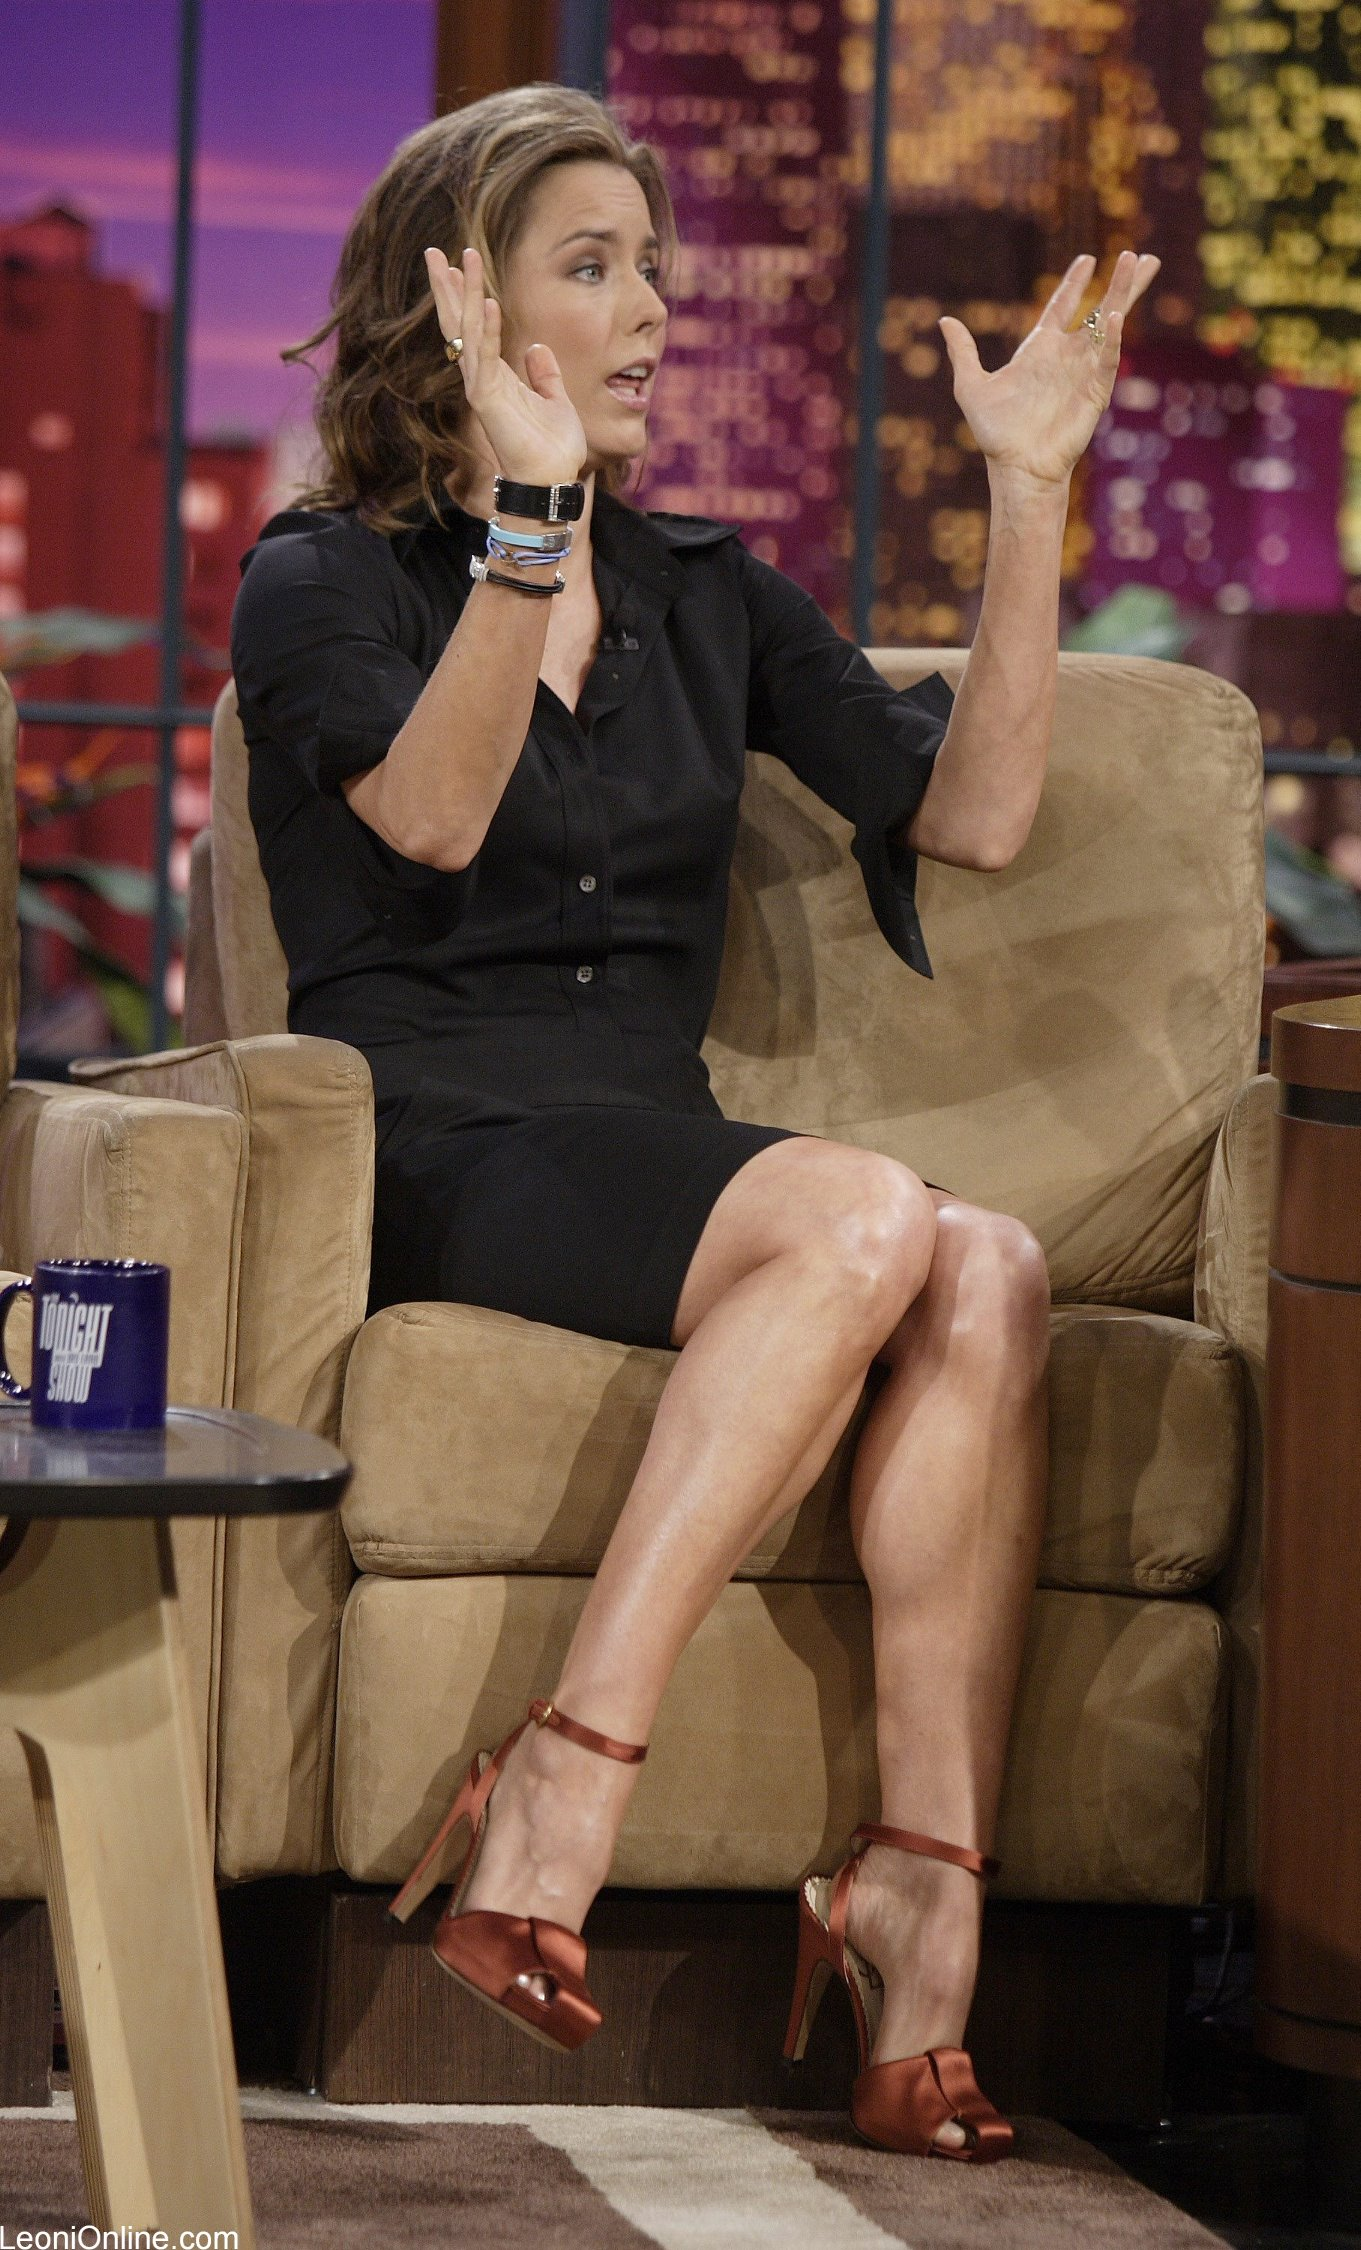 image Sarah palin feet toes and footwear